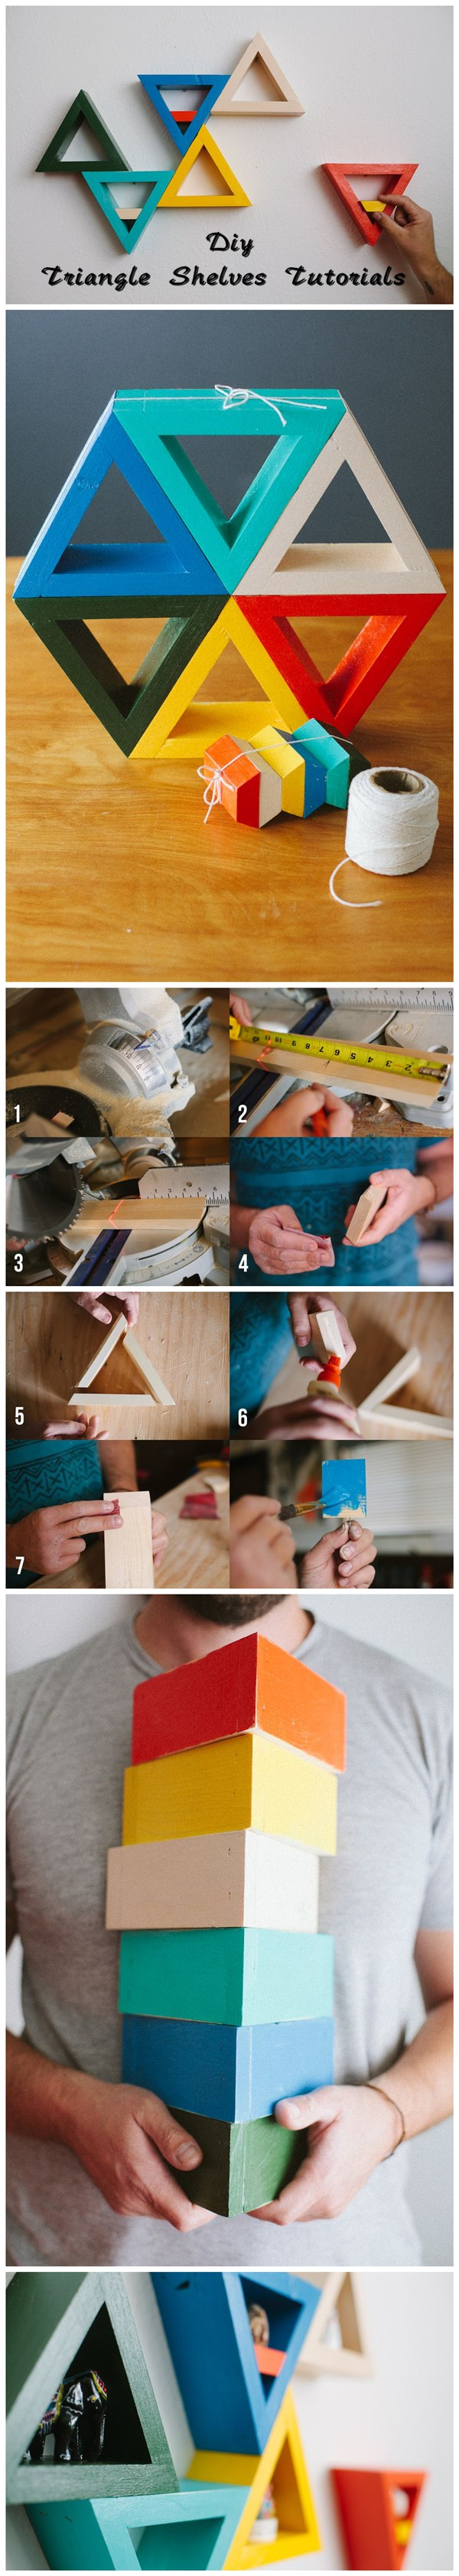 Diy Triangle Shelves Tutorials